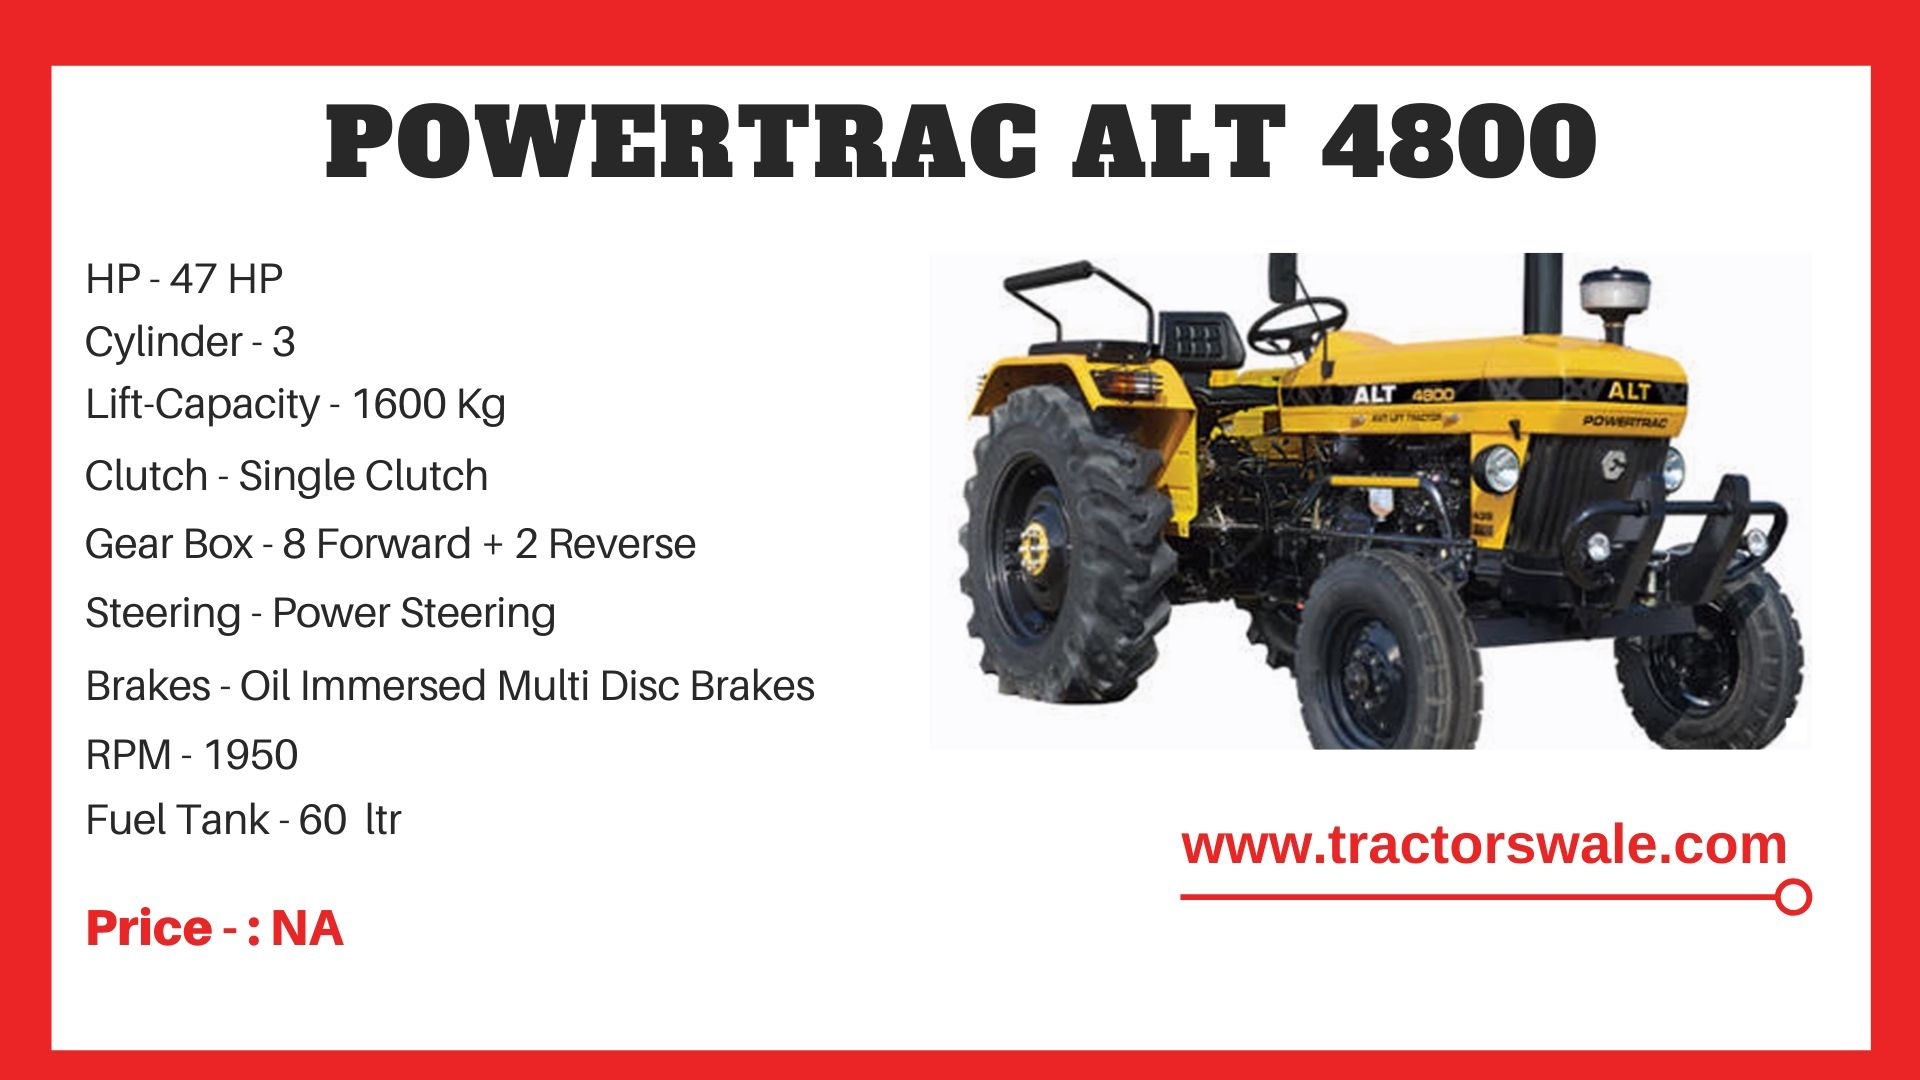 PowerTrac ALT 4800 tractor price